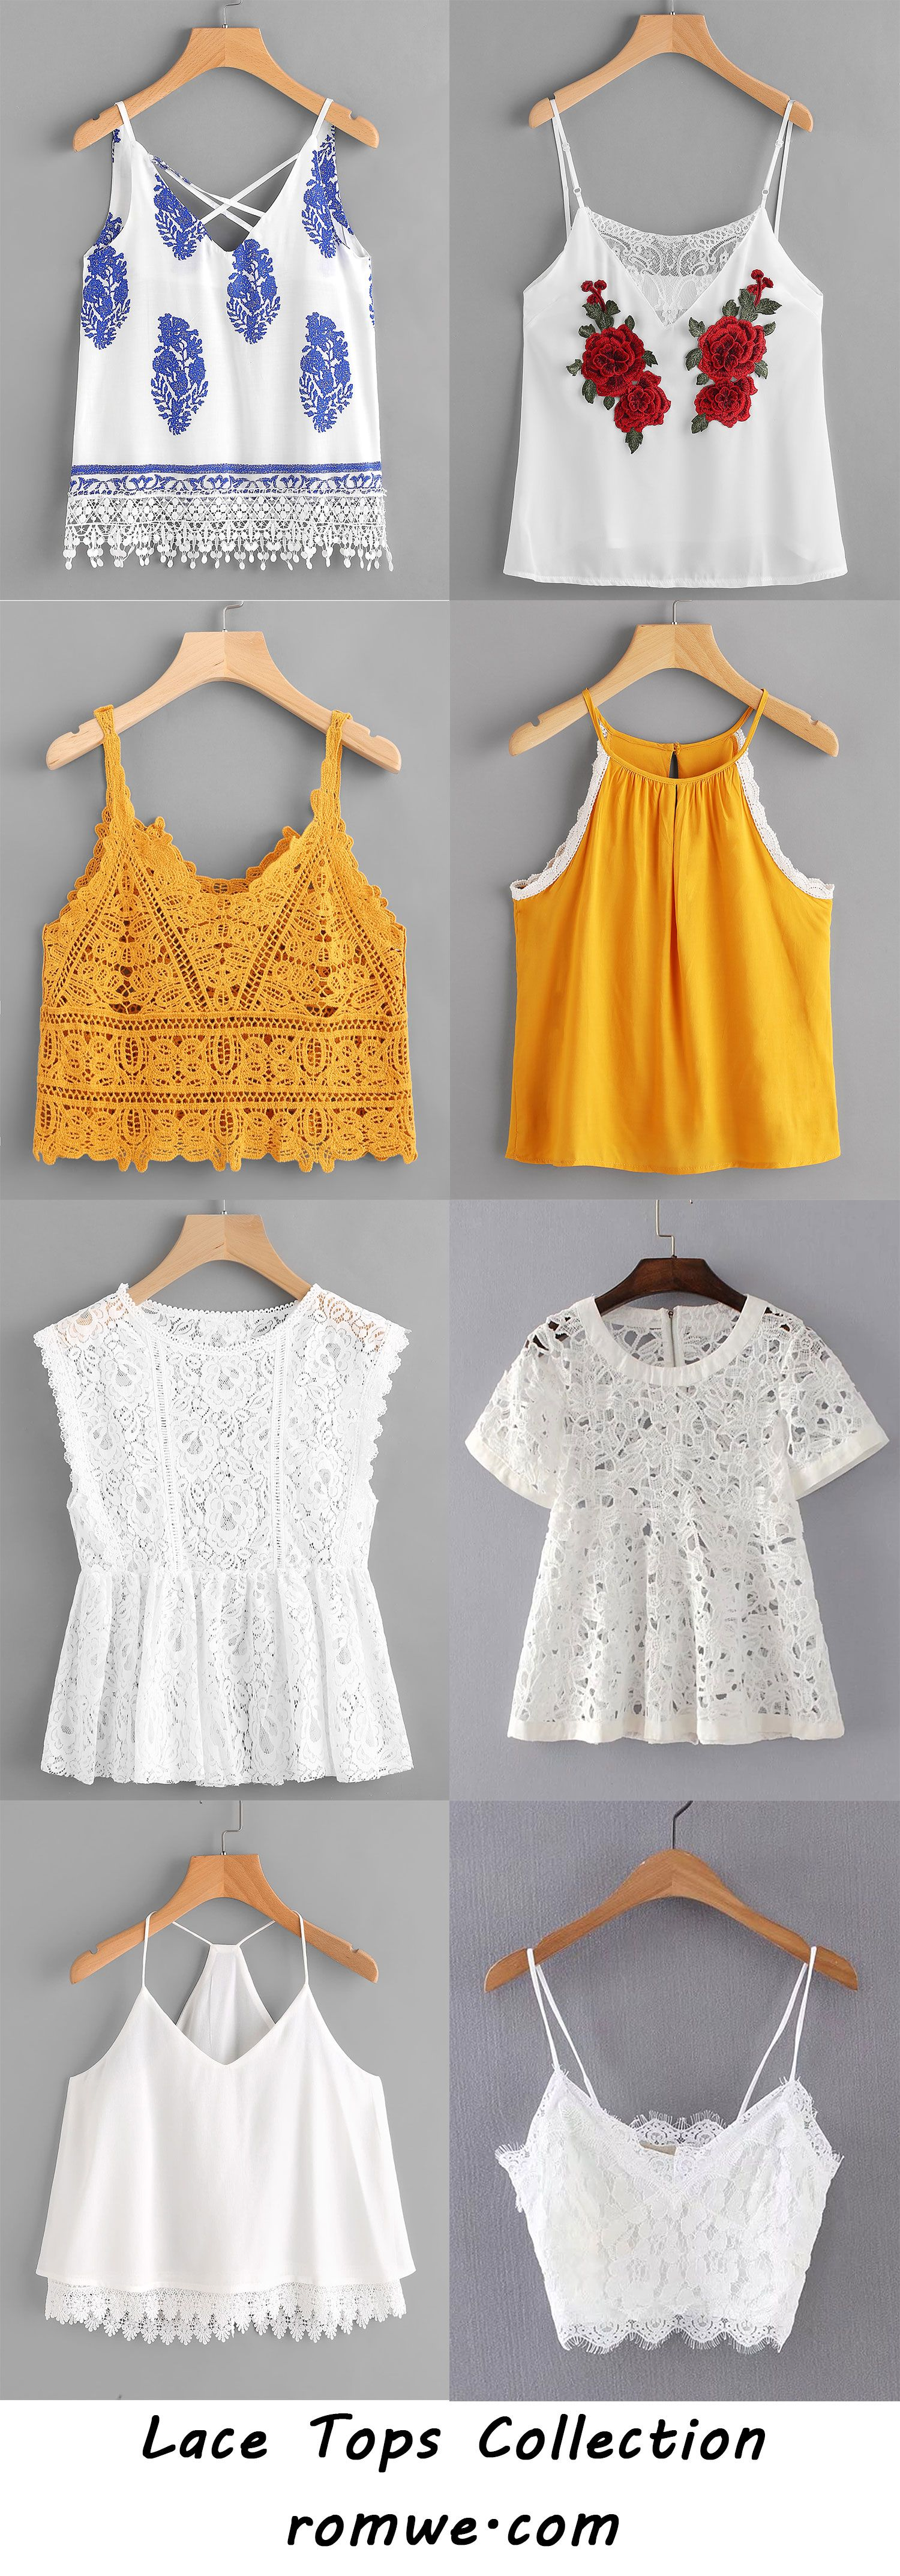 Lace Tops Collection 2017 - romwe.com